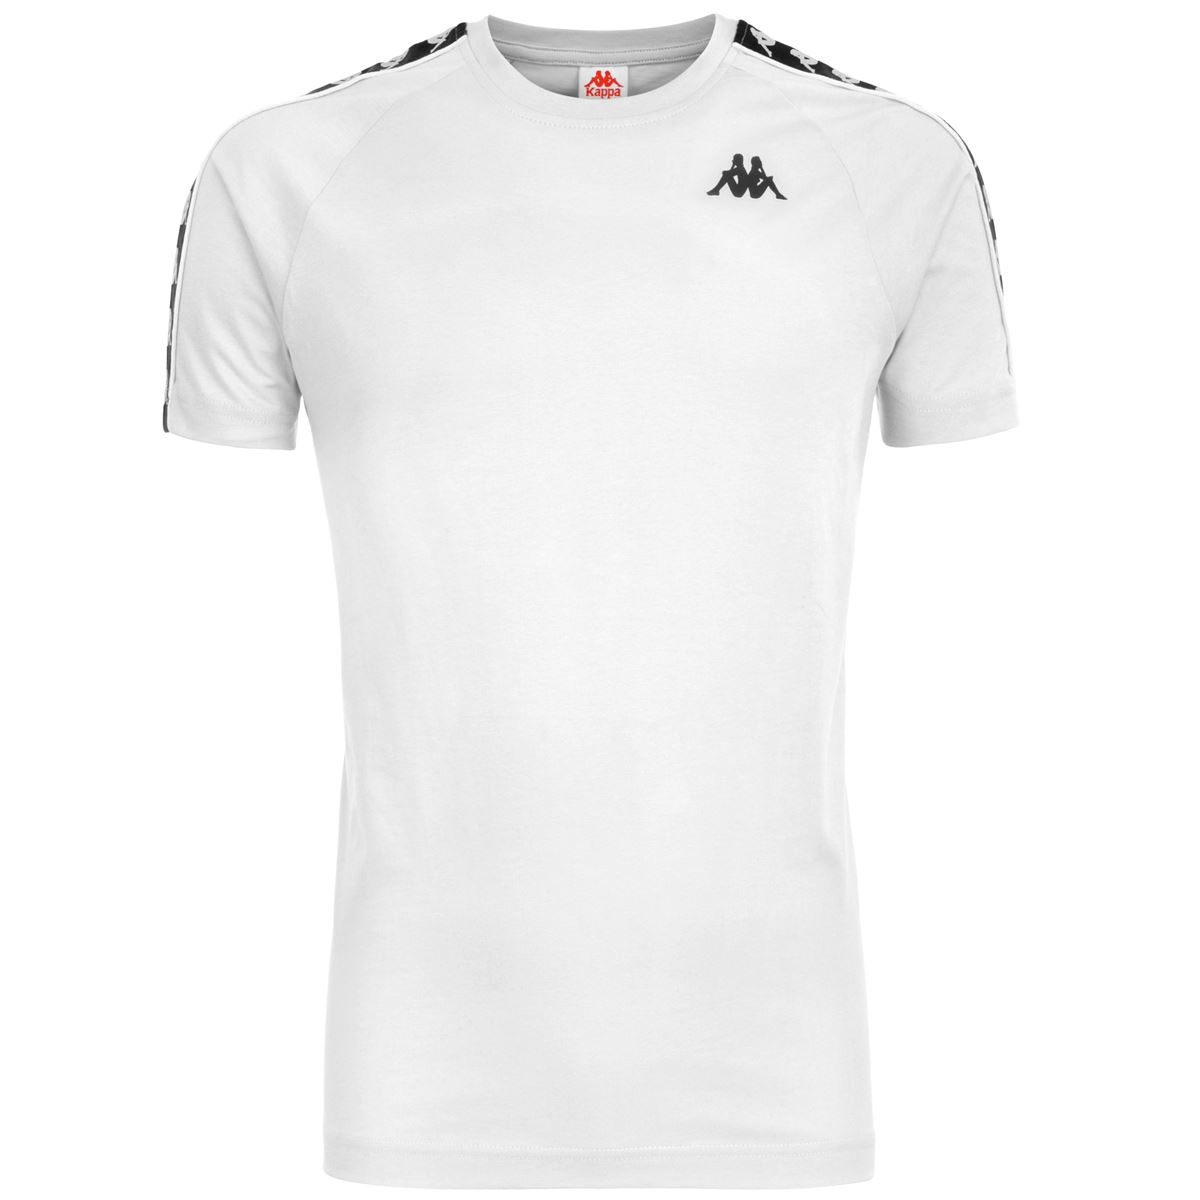 T-shirt girocollo da uomo in jersey. Kappa | T-shirt | 303UV10A99 WHITE-BLACK